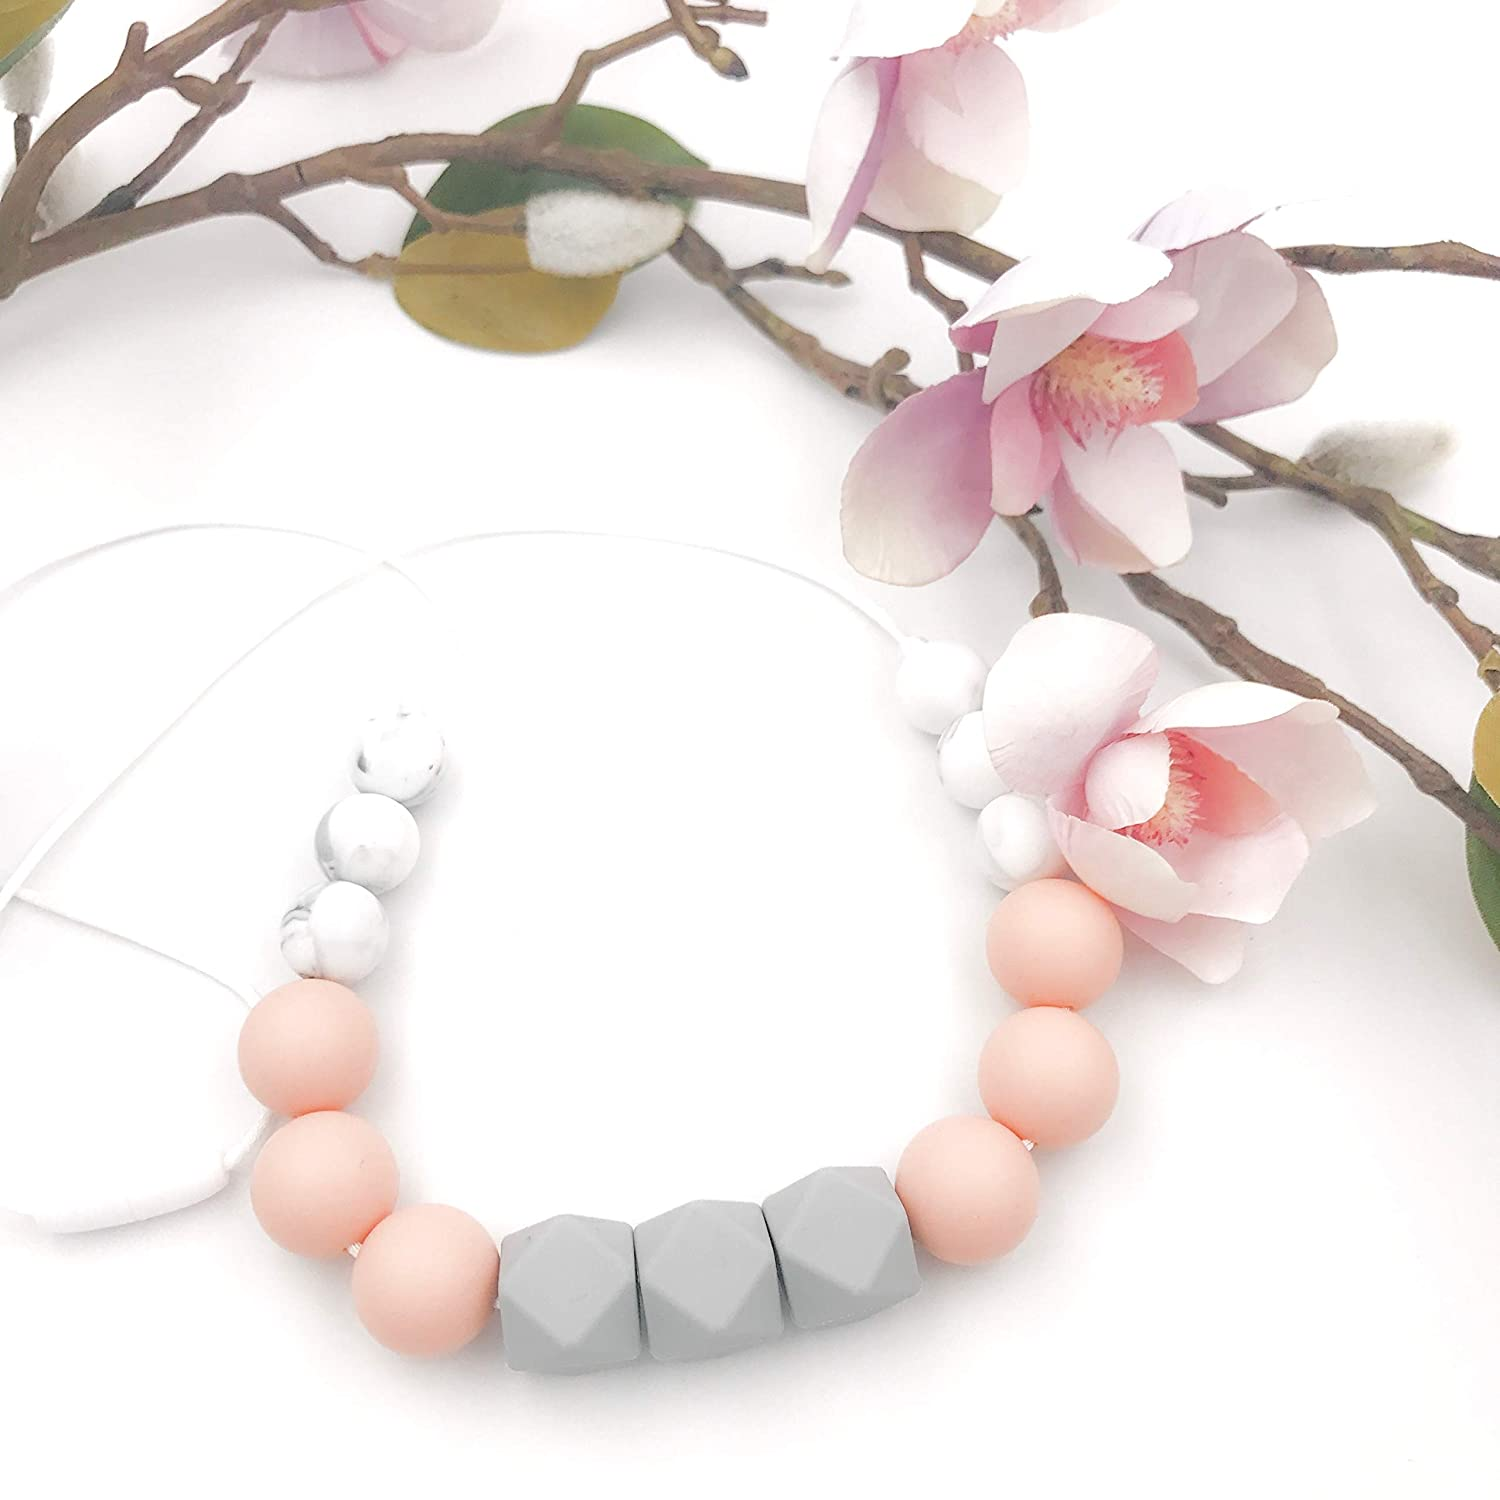 Silicone Teething Necklaces for Mama | BPA Free Eco-Friendly | Made in USA | Pearl Pink Blush Beige Grey Mint Monochrome Marble | Teether Style |